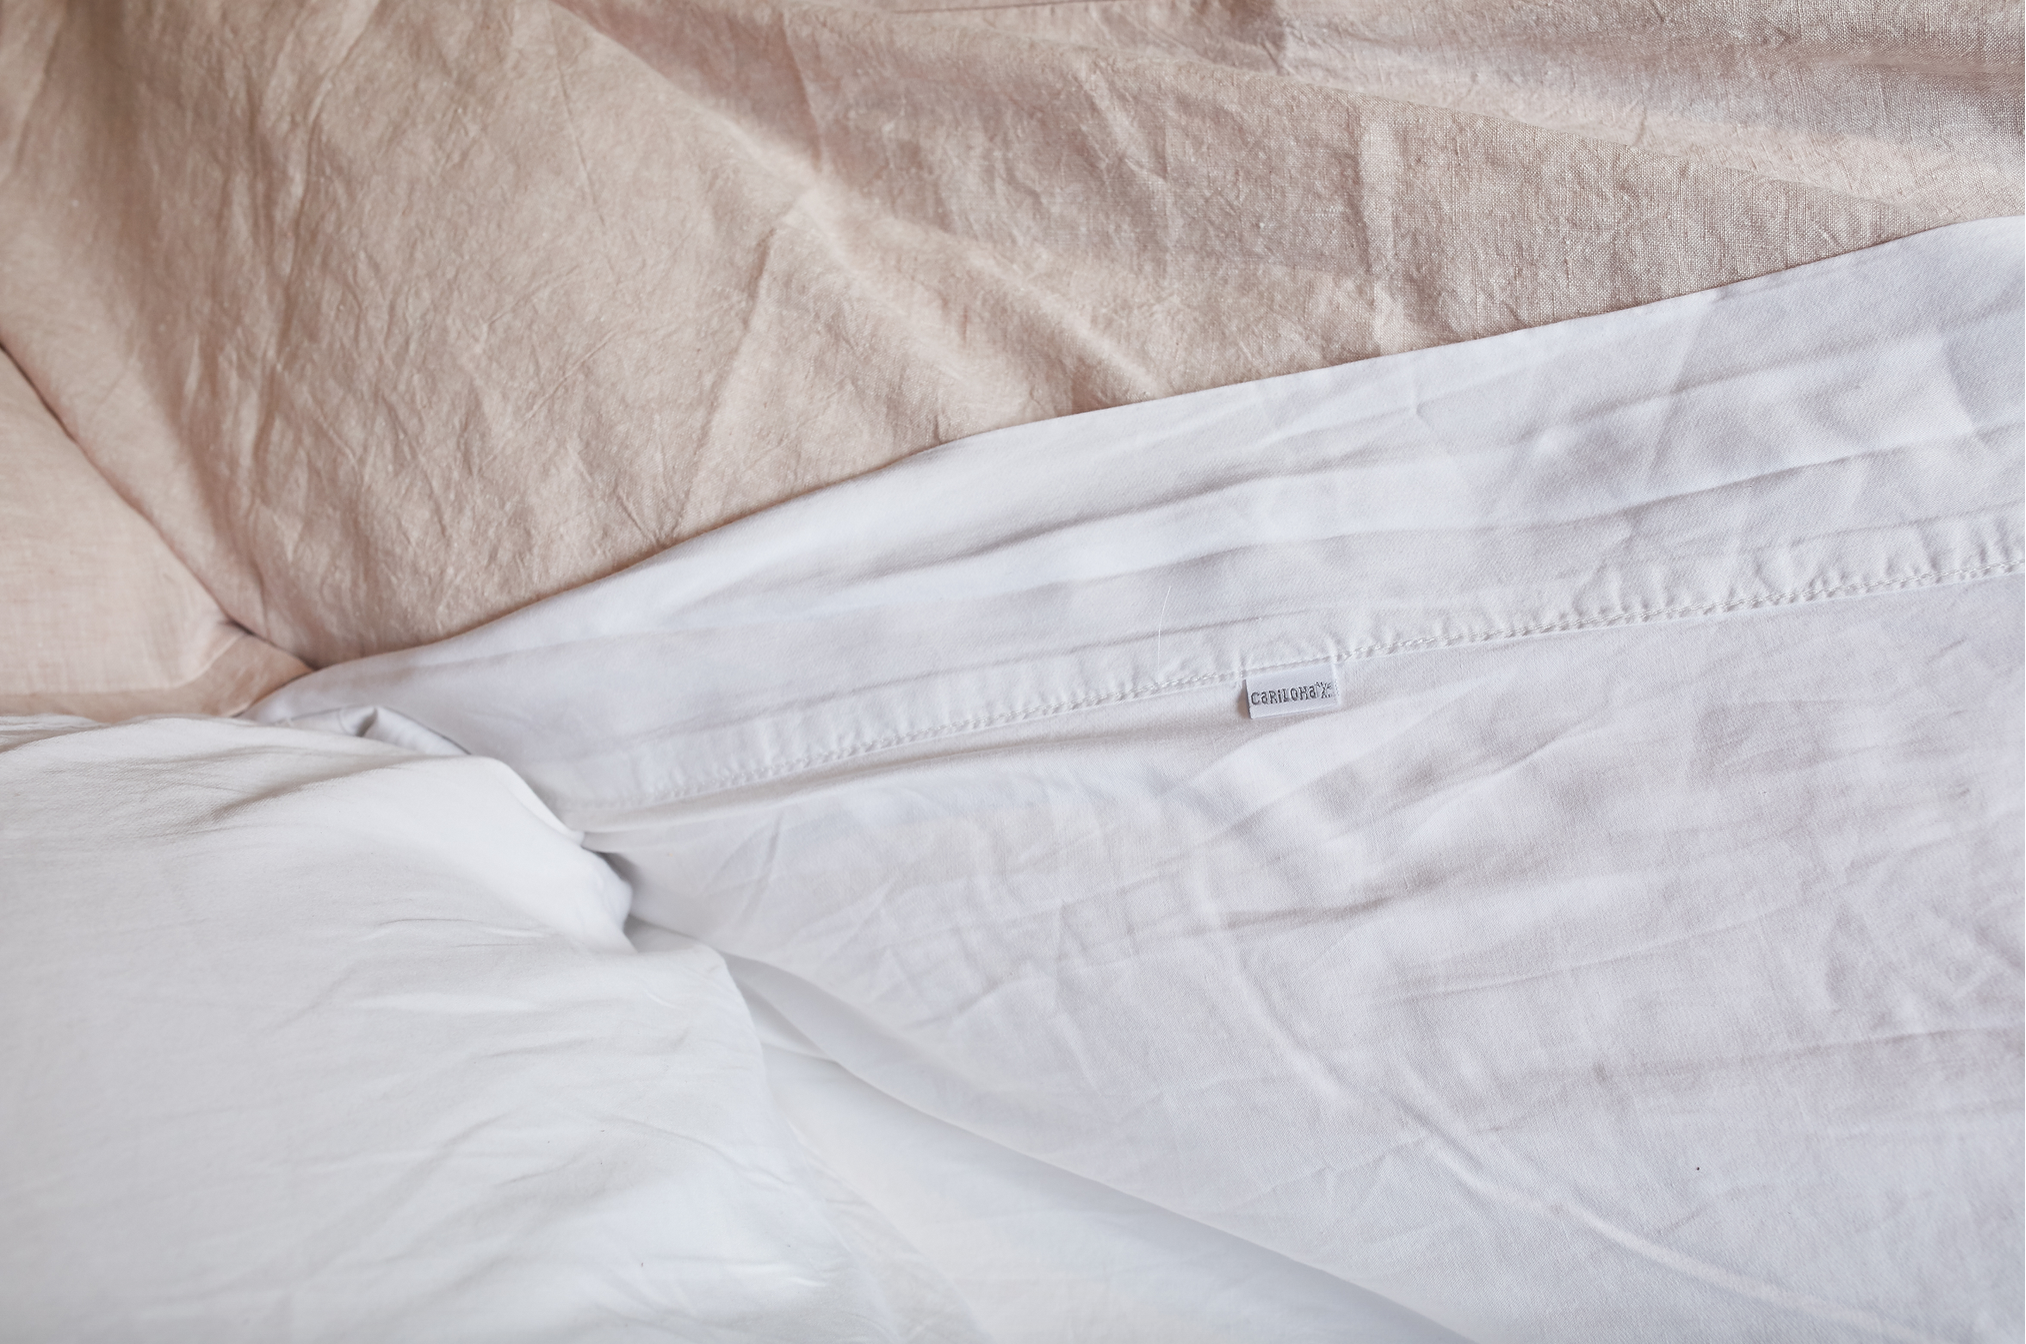 Sheets by Cariloha